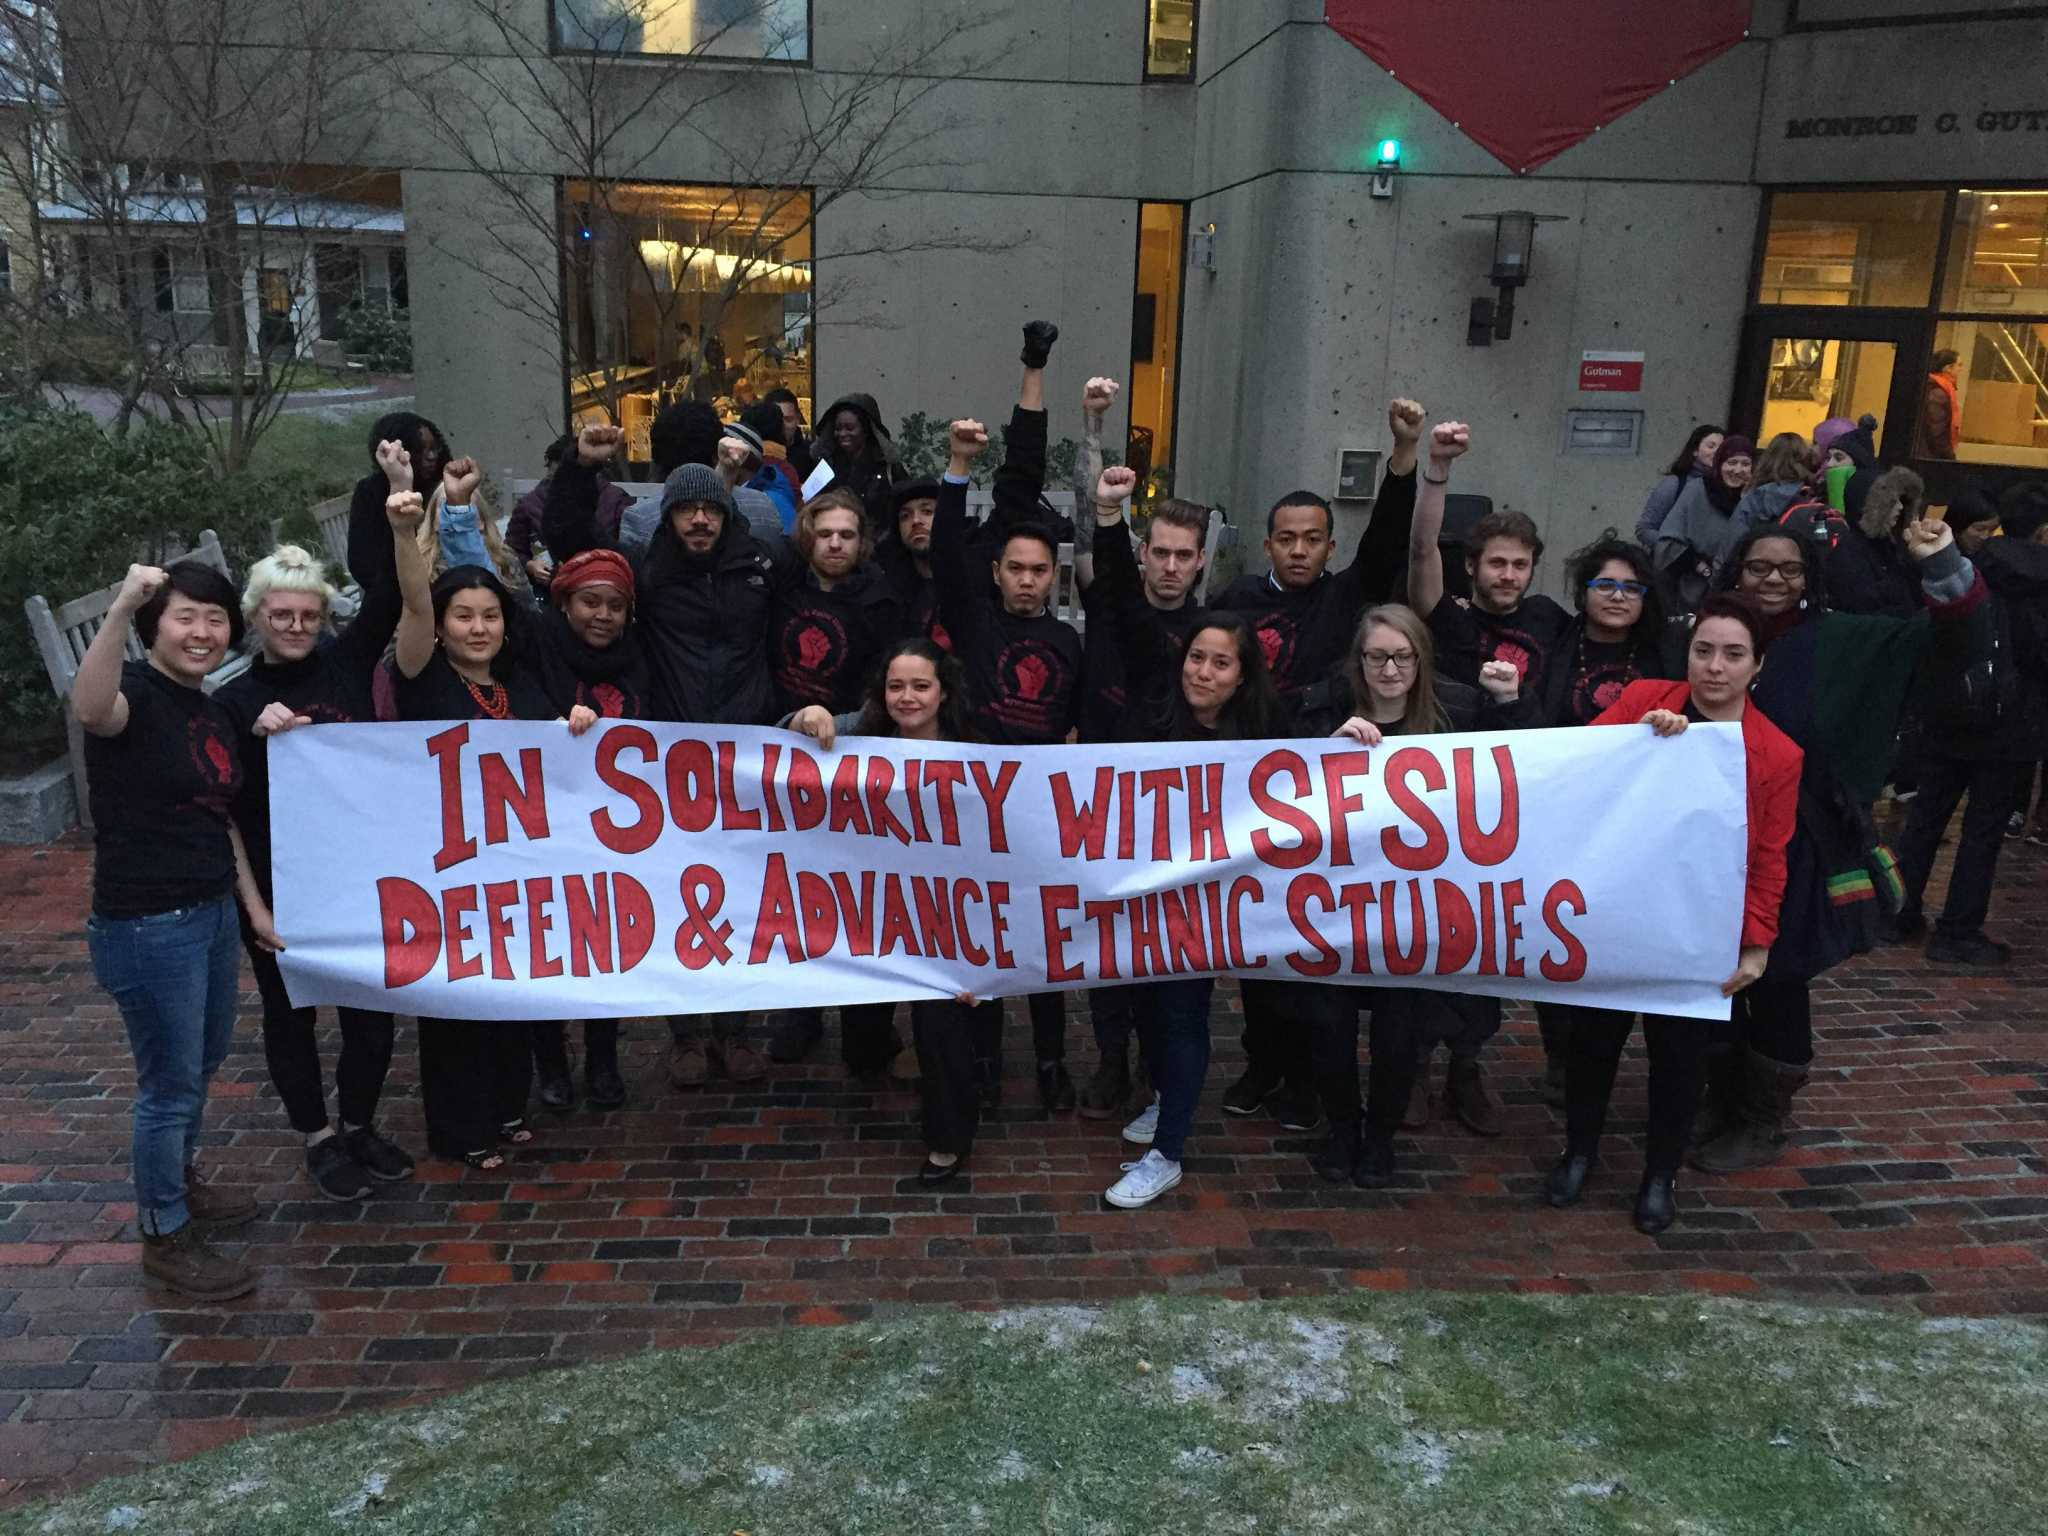 Harvard Graduate School of Education students pose with a banner they made in support of the SF State College of Ethnic Studies. (Photo courtesy of Christina Villarreal)